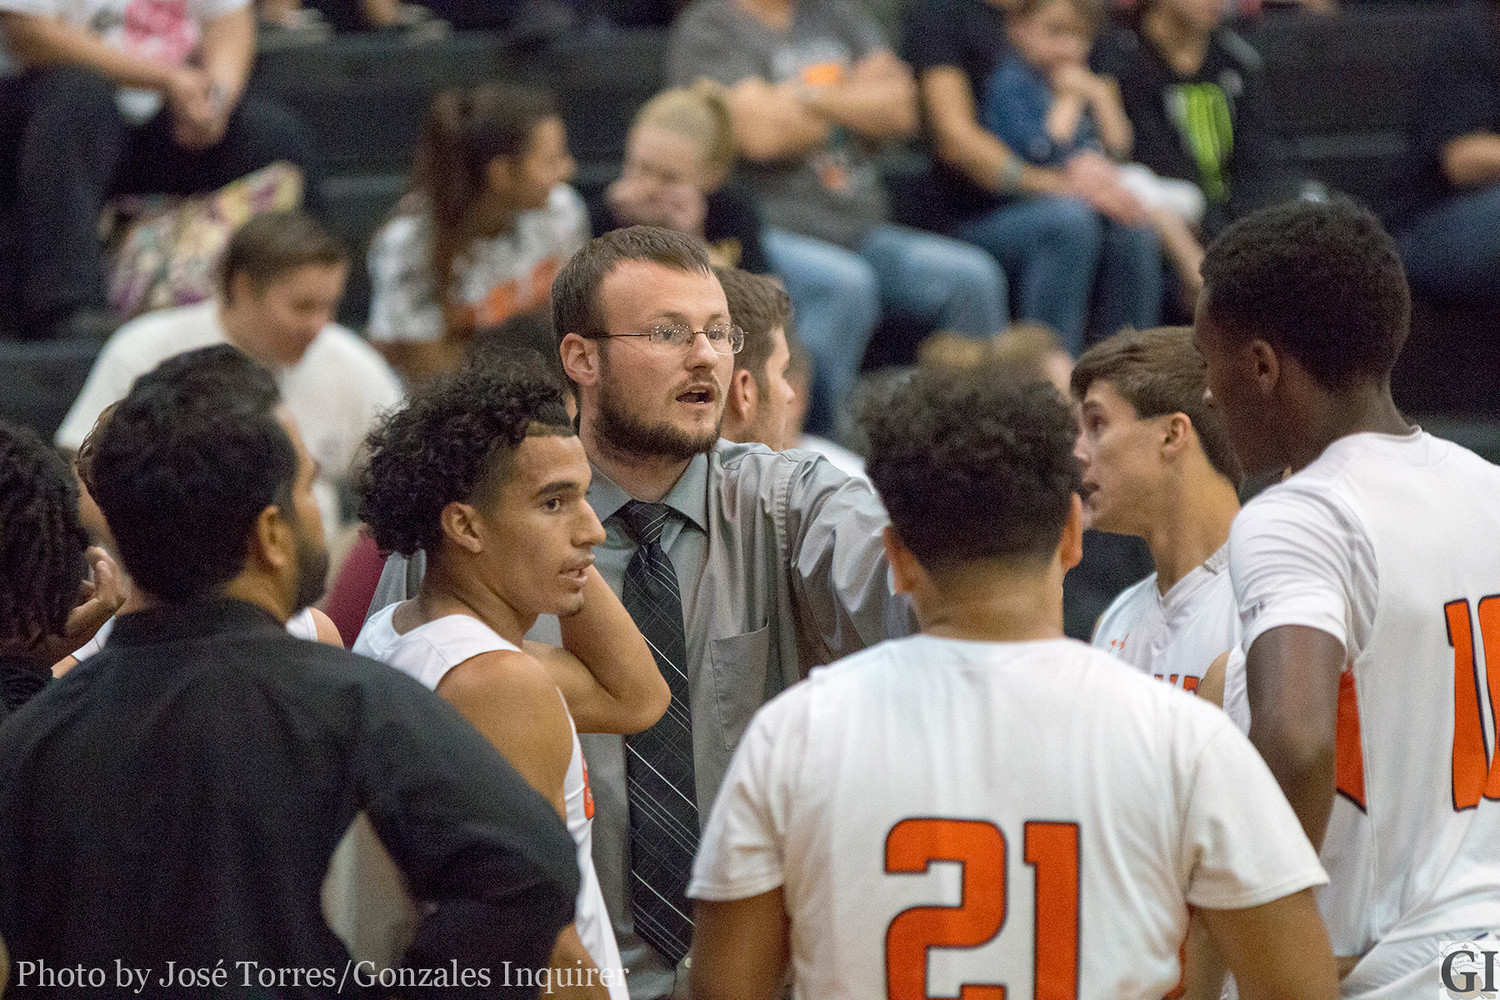 Head Coach A.J. Irwin believes it'll be a process, but the first-year coach is ready to get his team looking like the Running Apaches of old.